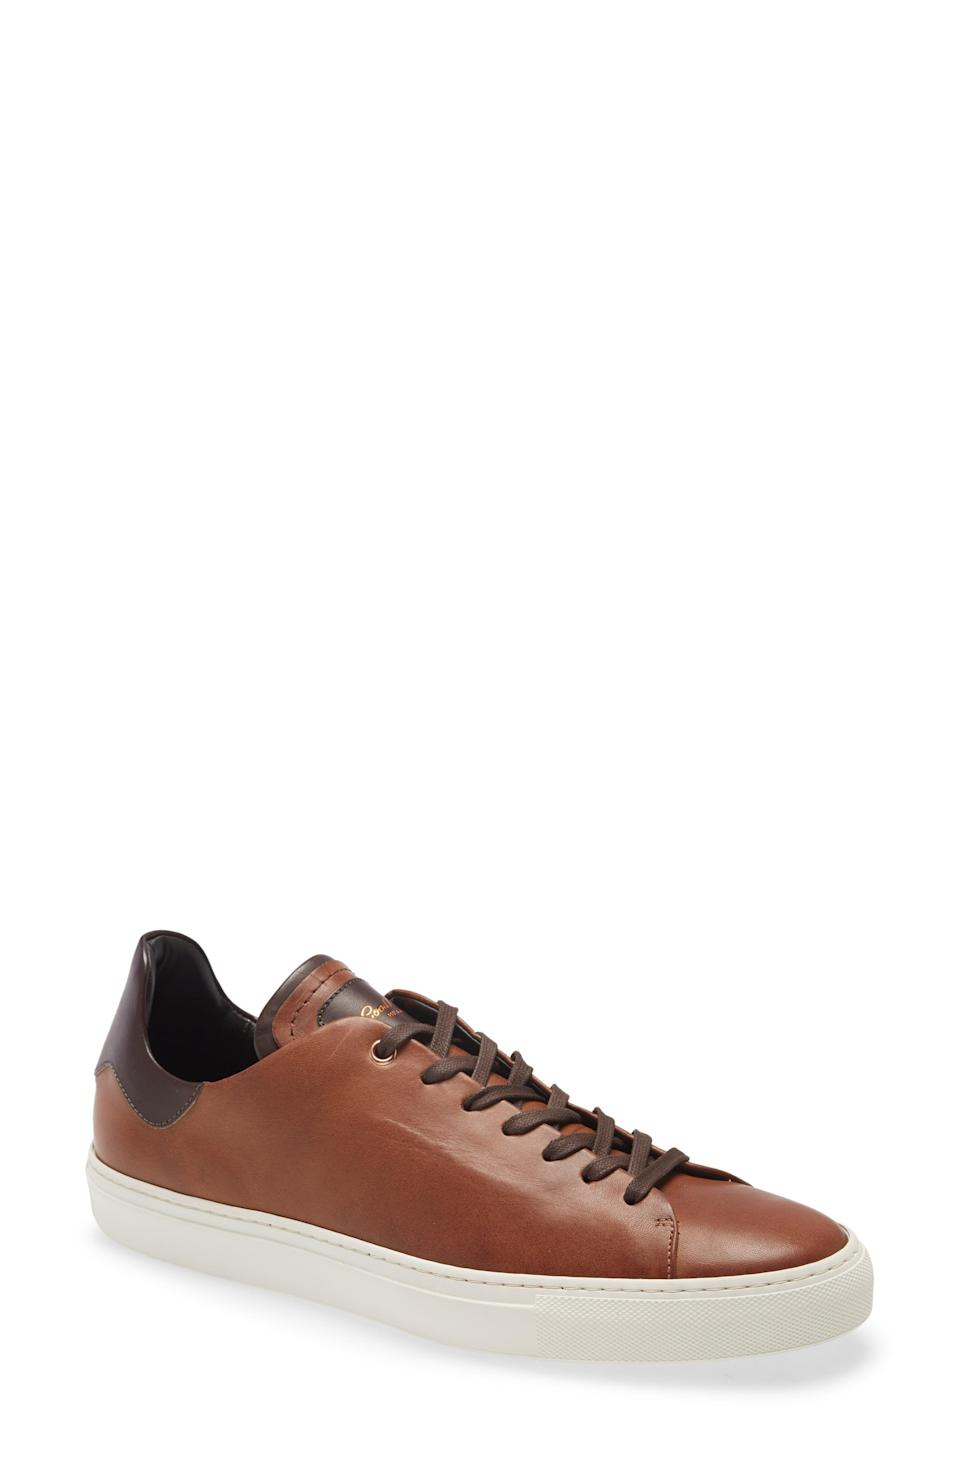 """<p><strong>Good Man Brand</strong></p><p>nordstrom.com</p><p><strong>$129.90</strong></p><p><a href=""""https://go.redirectingat.com?id=74968X1596630&url=https%3A%2F%2Fwww.nordstrom.com%2Fs%2Fgood-man-brand-legend-z-low-top-modern-core-sneaker-men%2F5799127&sref=https%3A%2F%2Fwww.bestproducts.com%2Ffitness%2Fg37158206%2Fnordstroms-anniversary-sale-best-sneakers%2F"""" rel=""""nofollow noopener"""" target=""""_blank"""" data-ylk=""""slk:BUY IT HERE"""" class=""""link rapid-noclick-resp"""">BUY IT HERE</a></p><p><del>$198</del><br><strong>$129.90</strong></p><p>Of course, for the moments when you want or need an added level of polish, a pair of leather sneakers will always be a good option. These are sure to be a staple in your closet for years to come.</p>"""